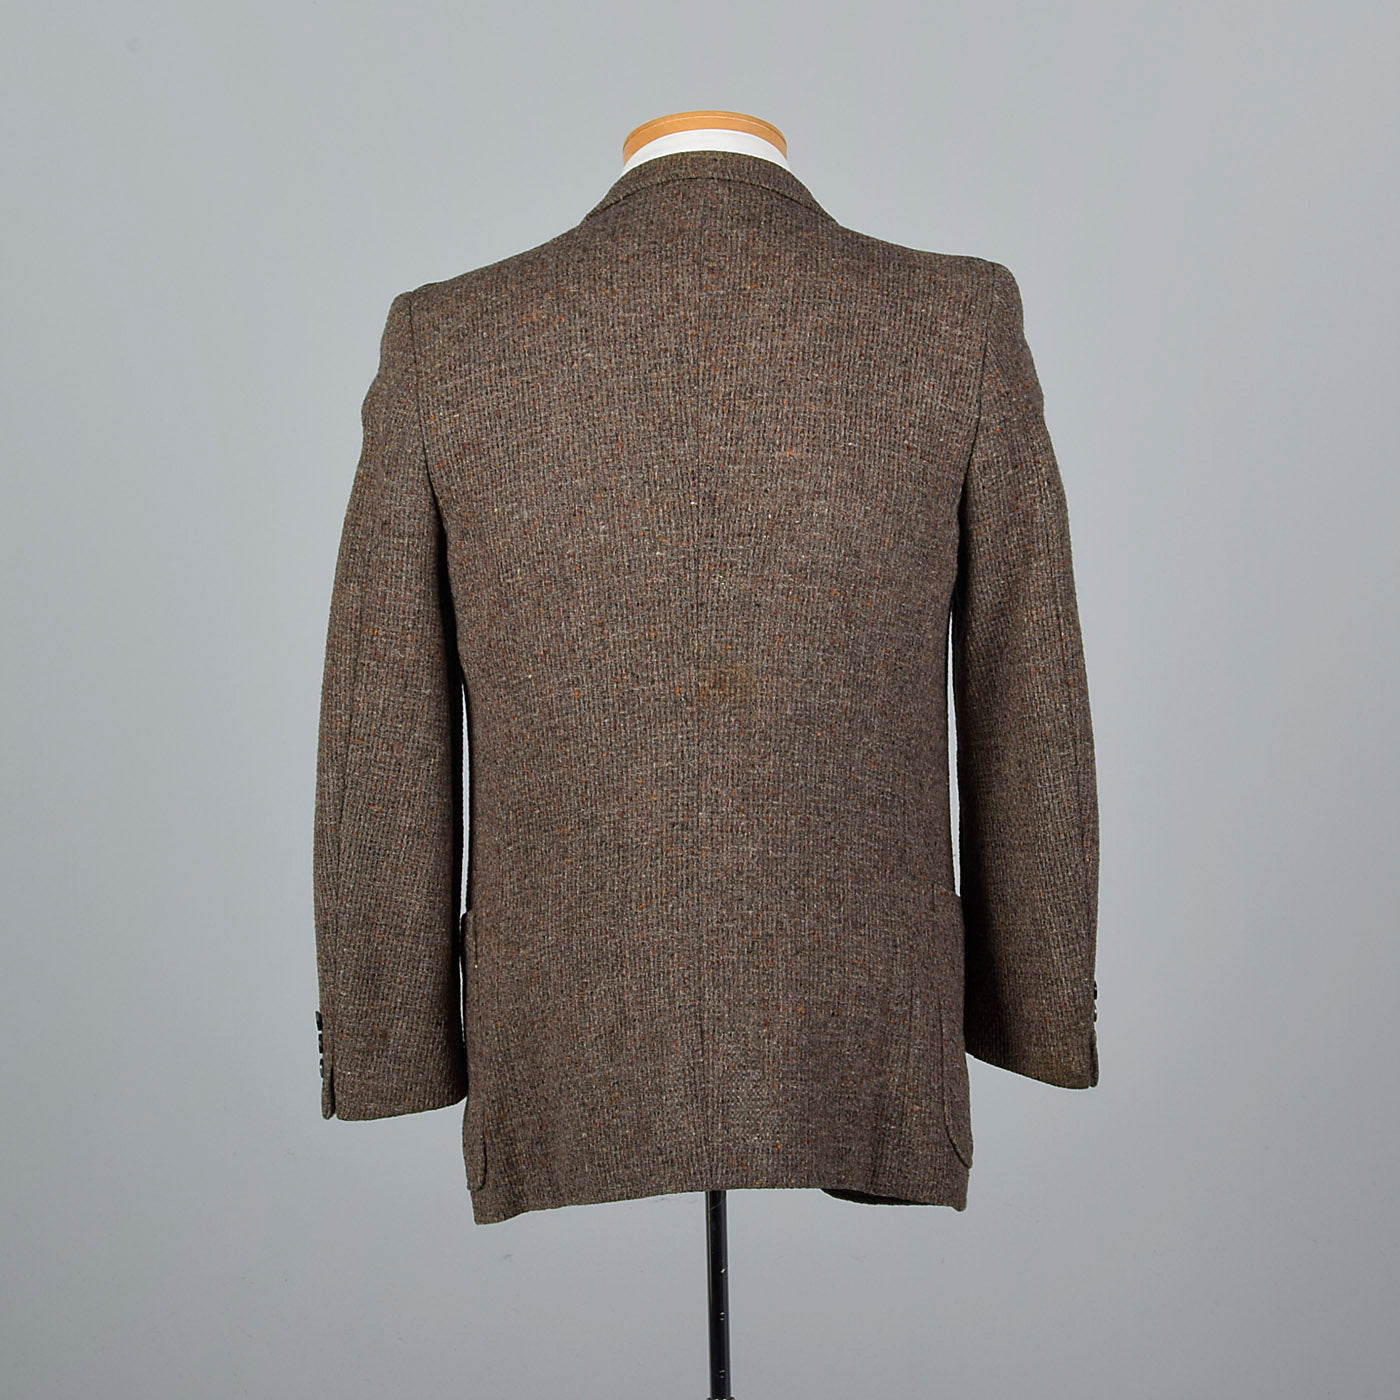 1970s Mens Yves Saint Laurent Chunky Tweed Jacket